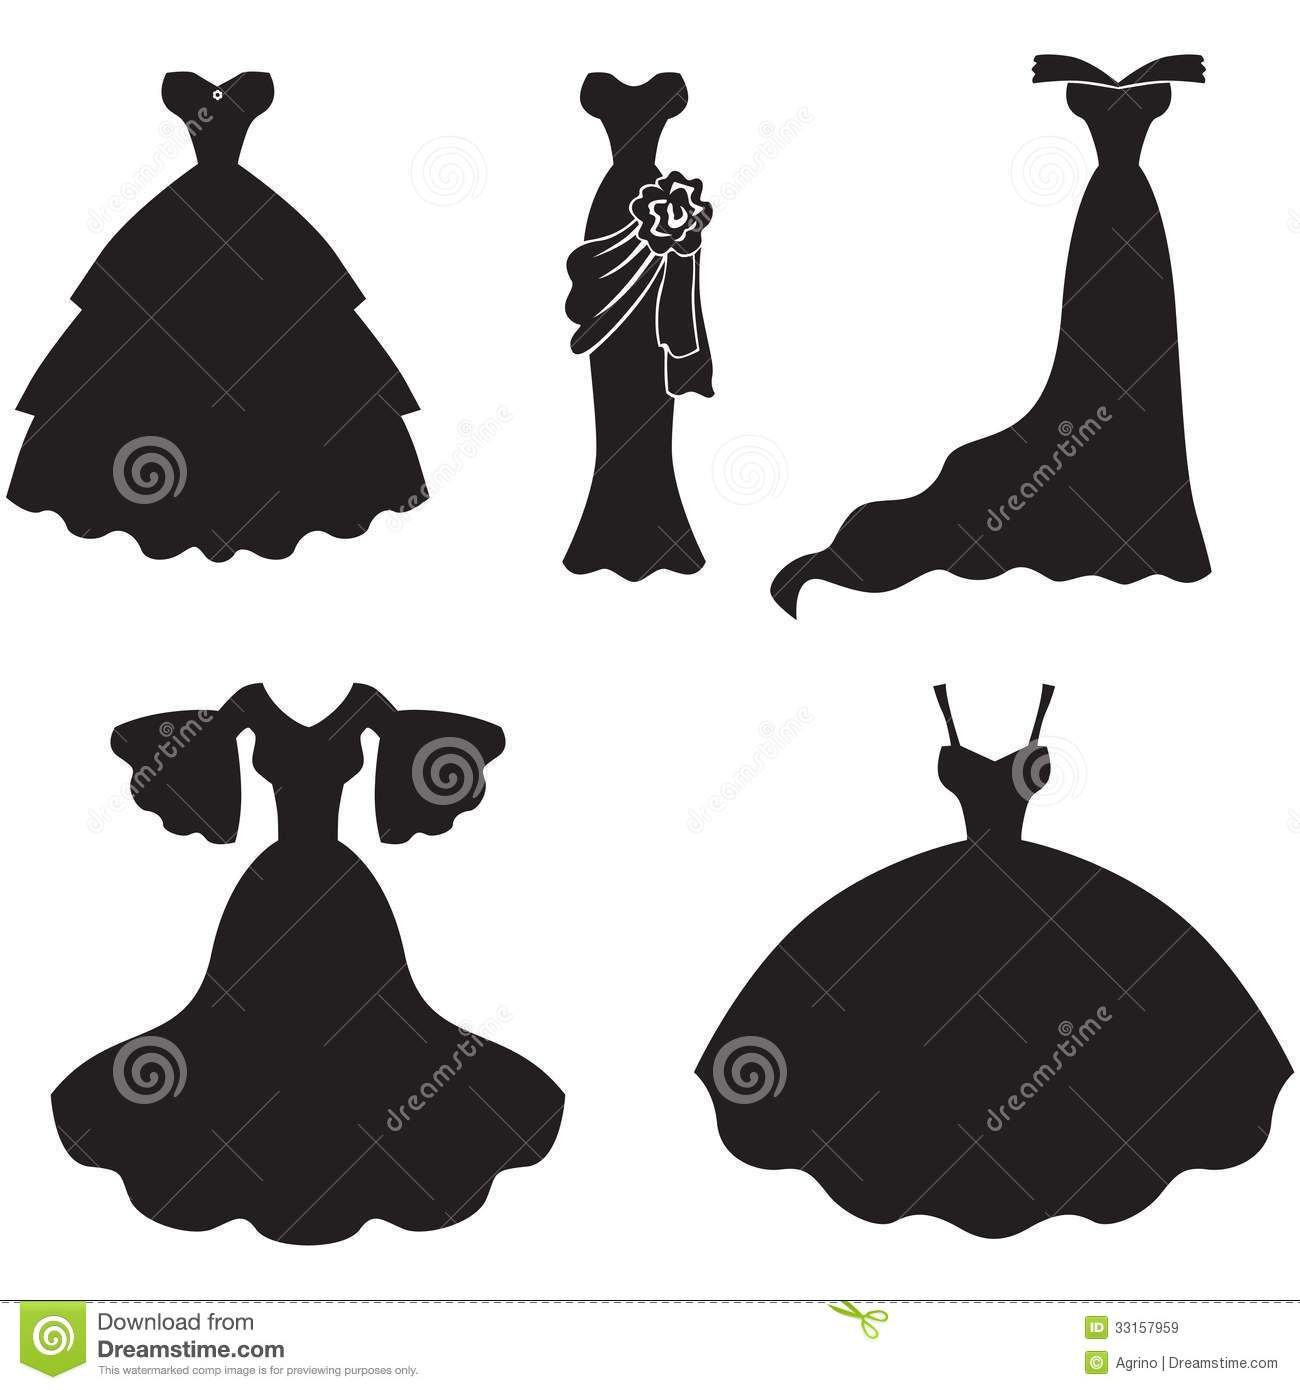 Black Dress clipart princess dress.